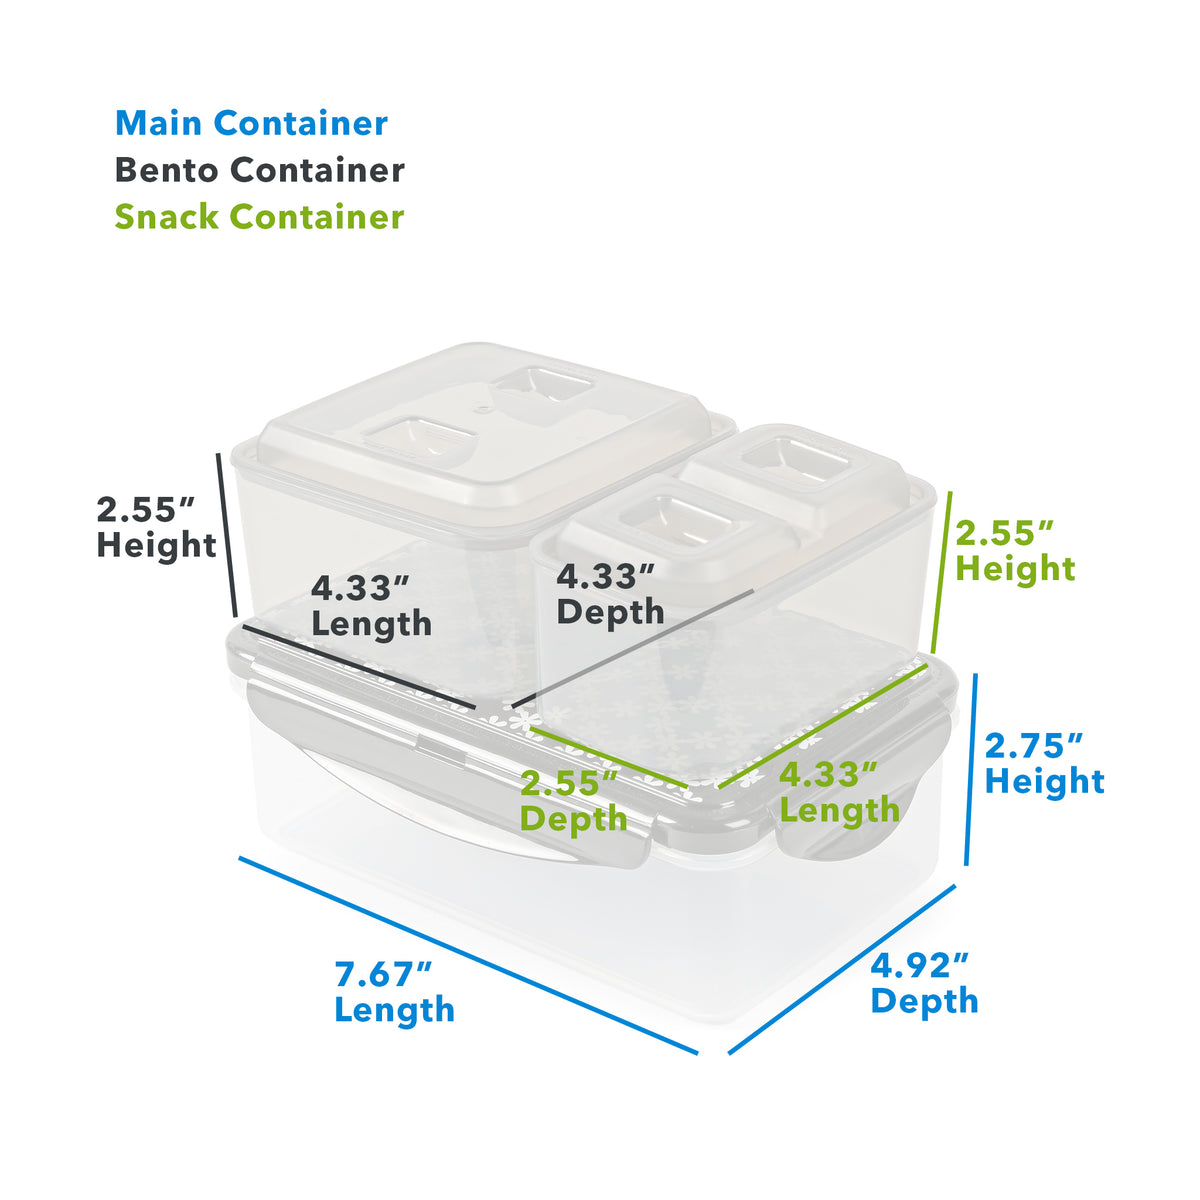 "Arctic Zone® Bennet Tote - Mixed Stripes - Main Container (L x D x H) 7.67"" x 4.92"" x 2.75"", Bento Container : (L x D x H) 4.33"" x 4.33"" x 2.55"", Snack Container: (L x D x H) 4.33"" x 2.55"" x 2.55"""